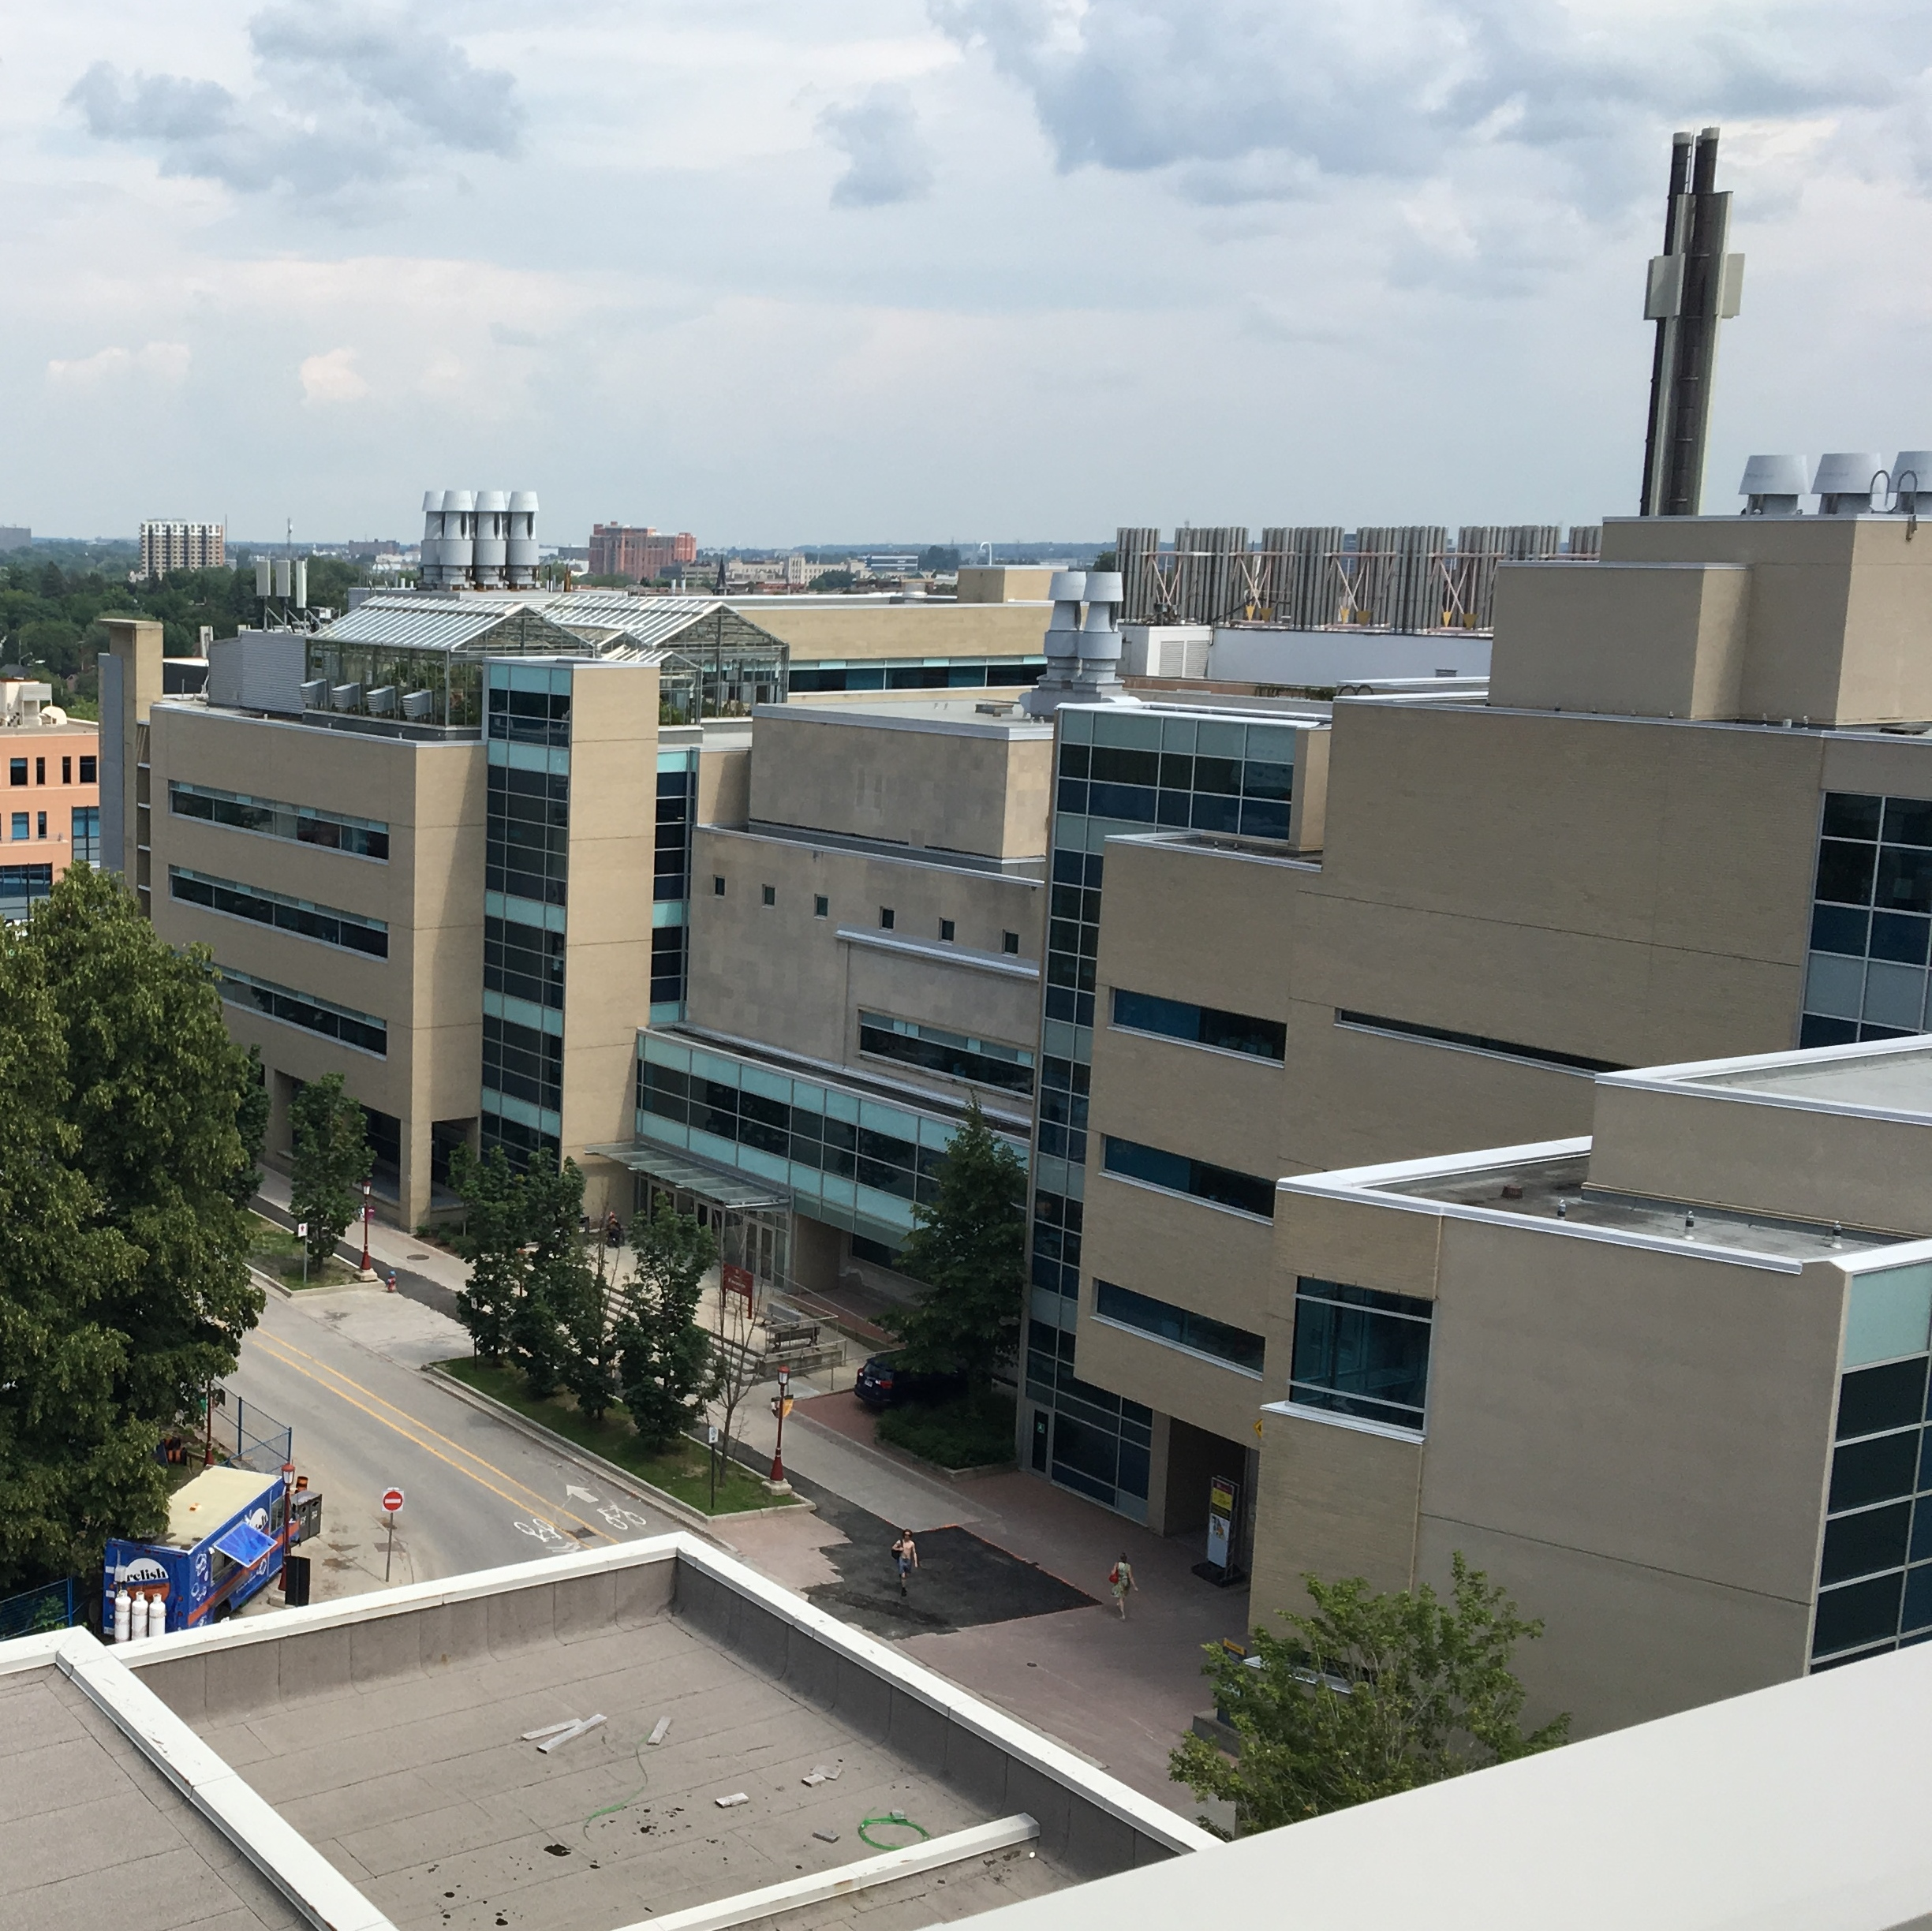 A view of three connected biology buildings as seen from a roof across the street